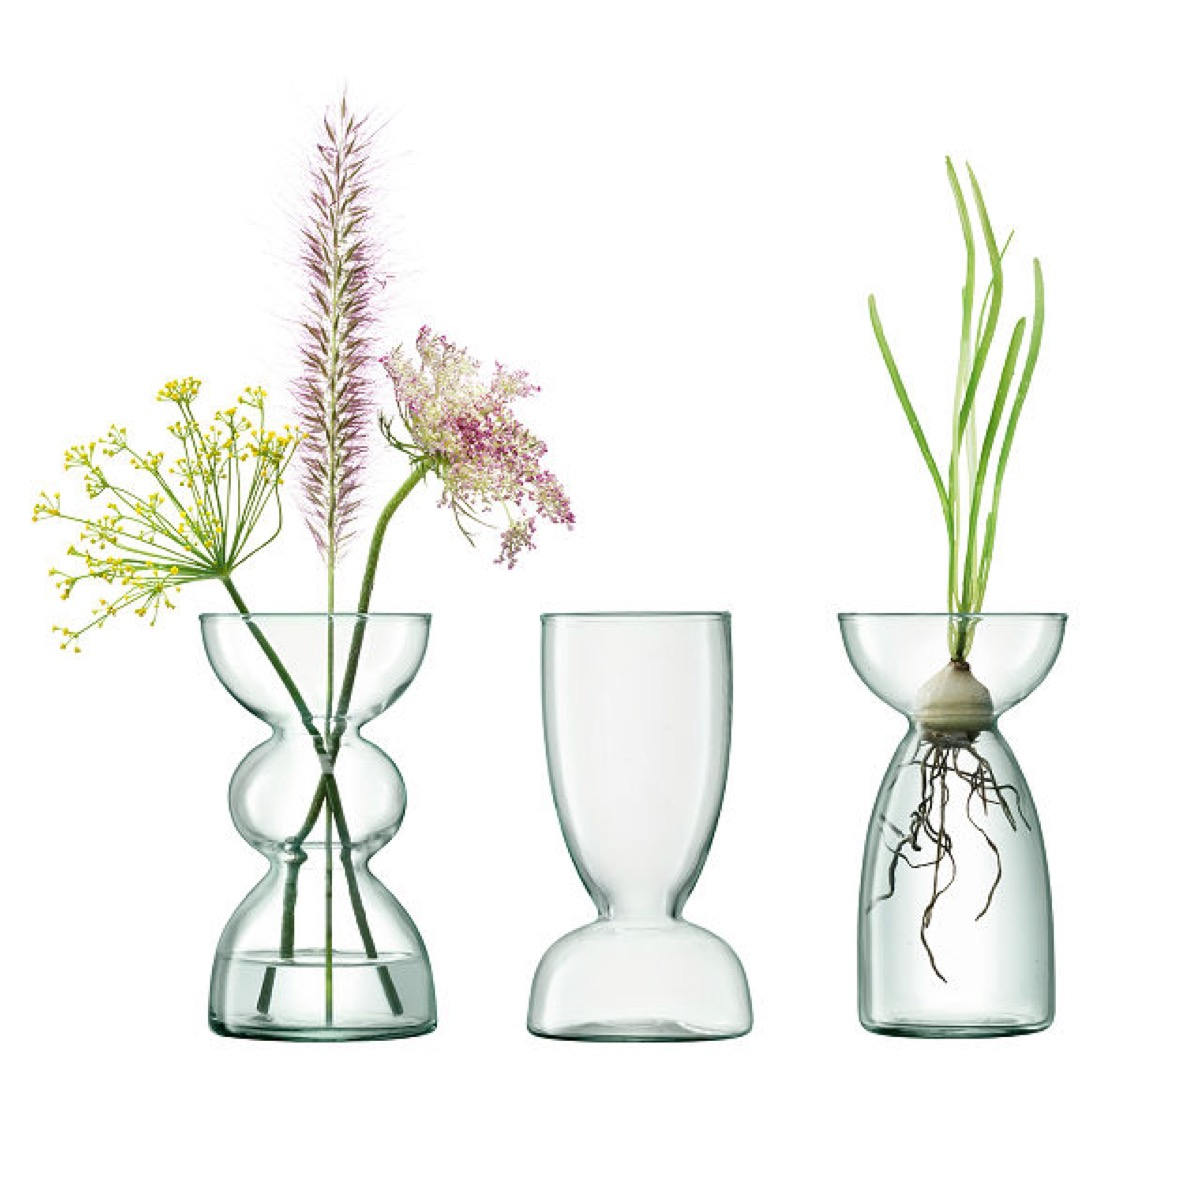 three glass vases with plants in them